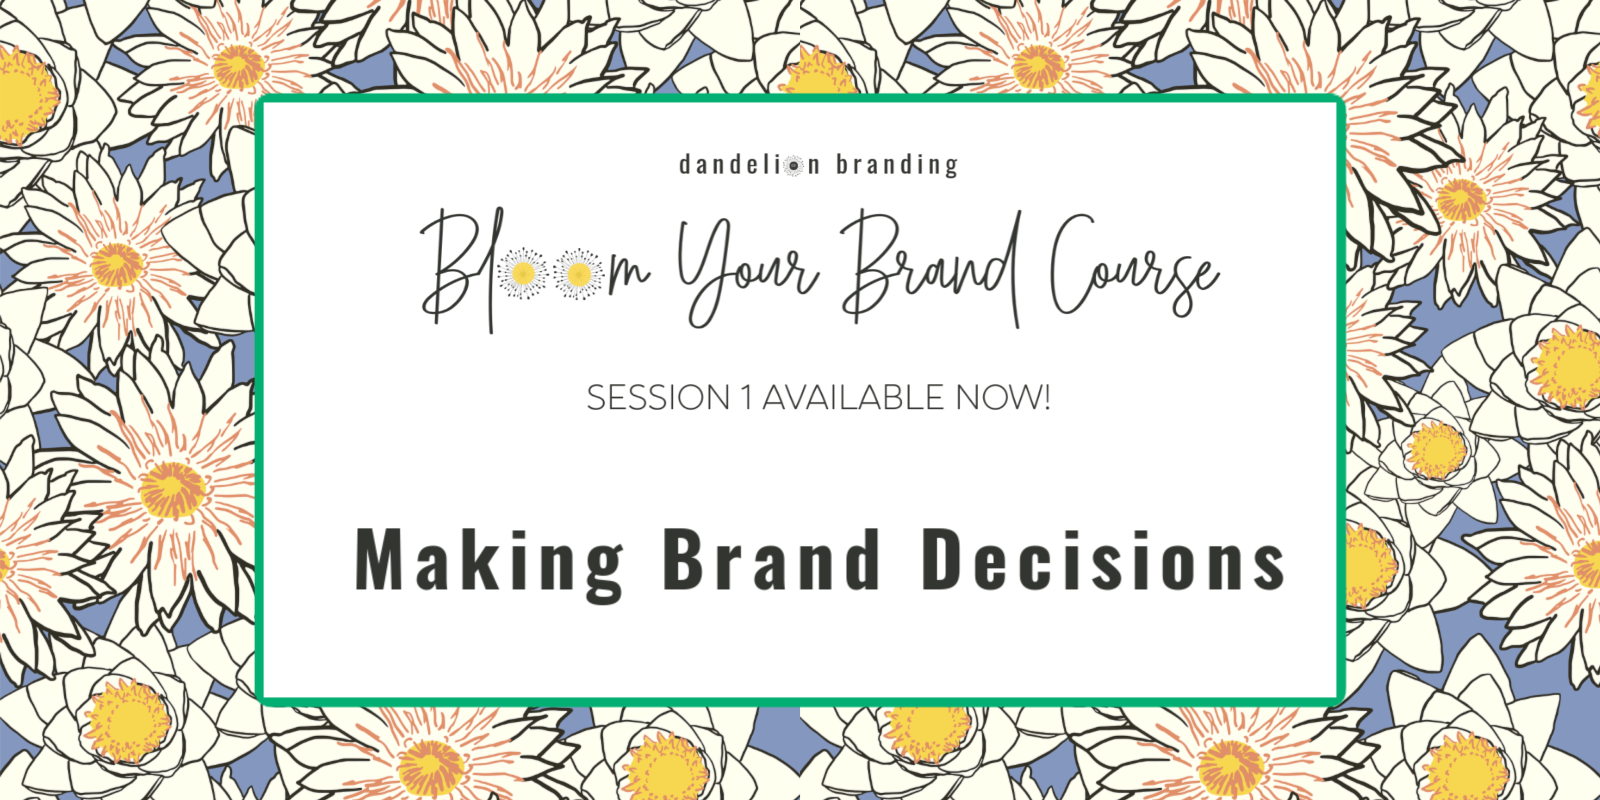 Making Brand Decisions: Branding Course